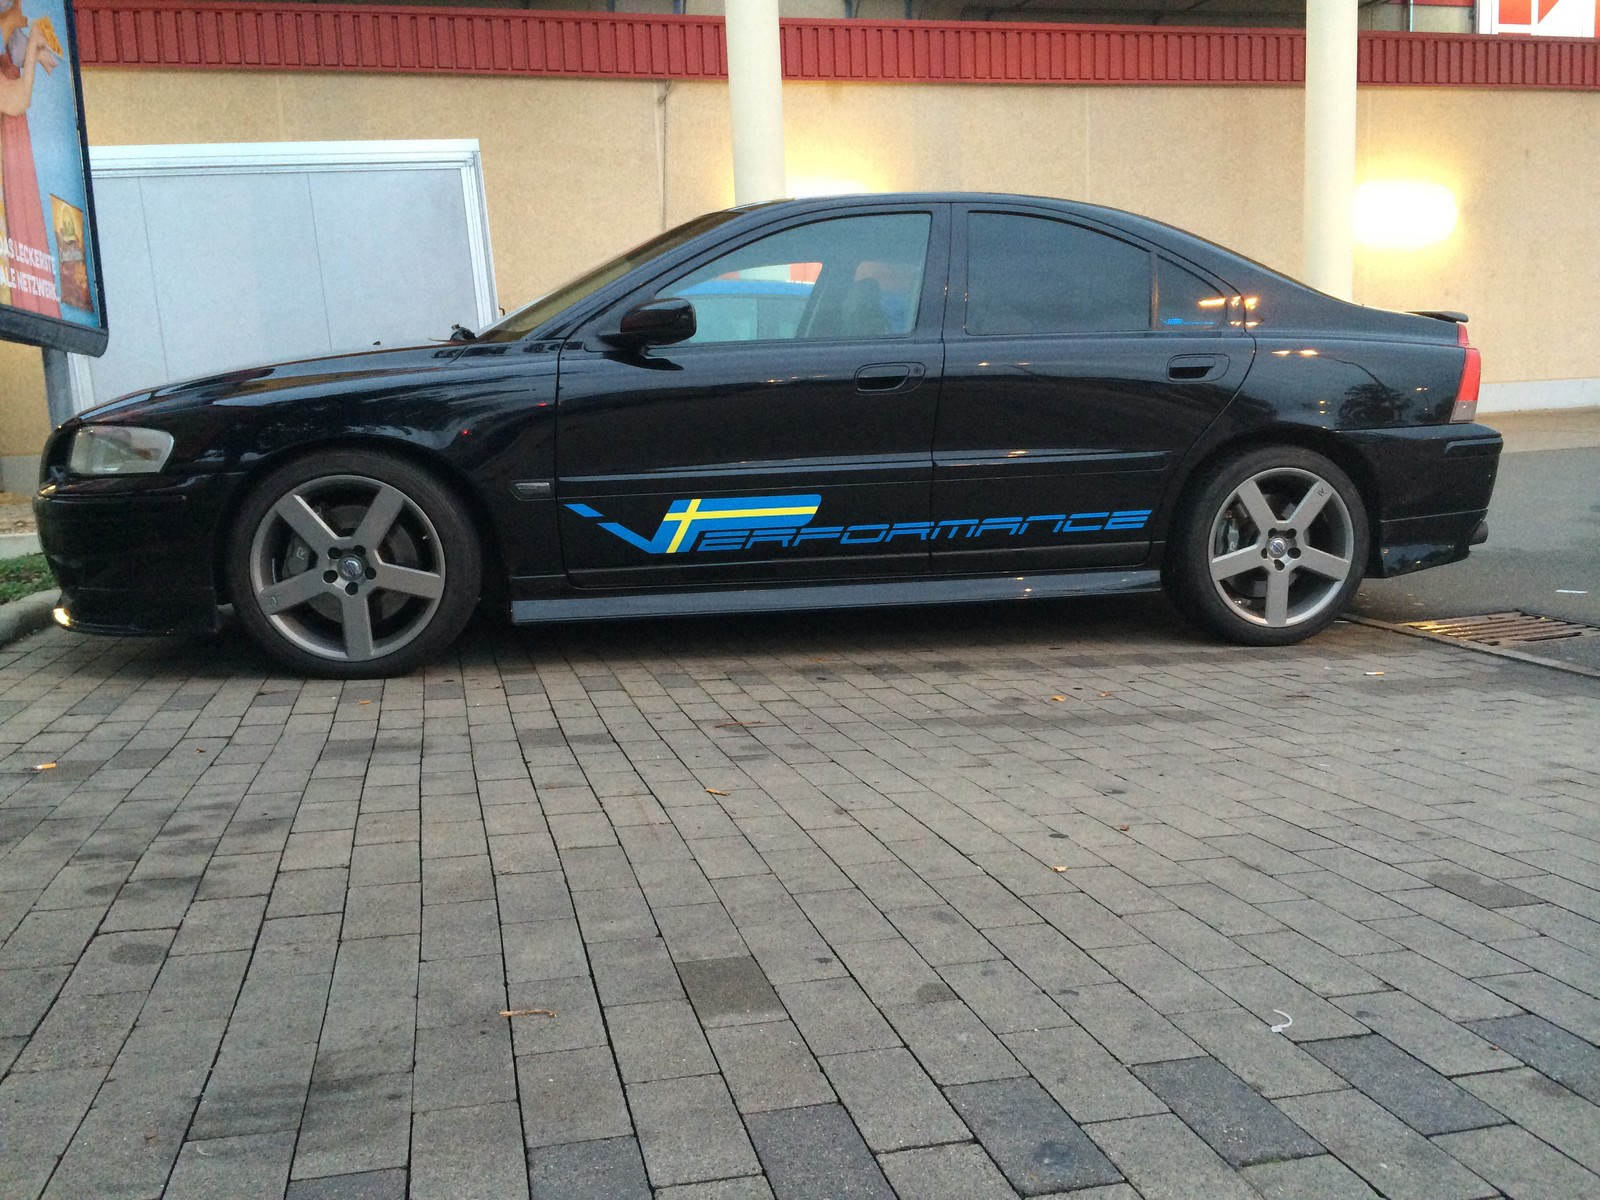 Black 2004 Volvo S60 R awd